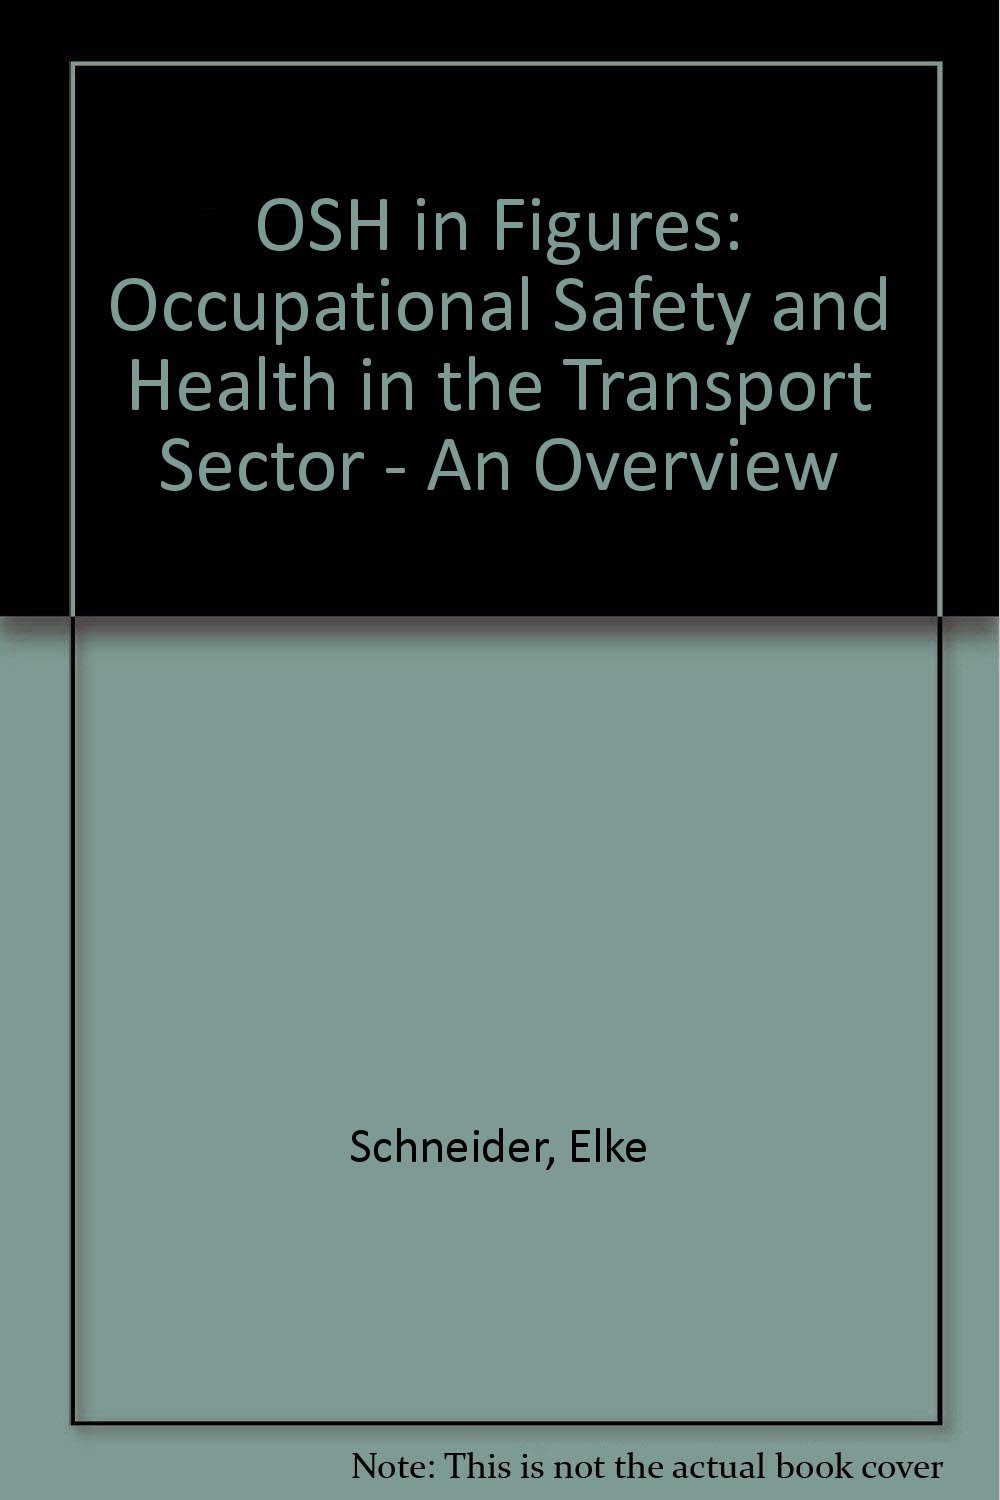 OSH in Figures: Occupational Safety and Health in the Transport Sector - An Overview